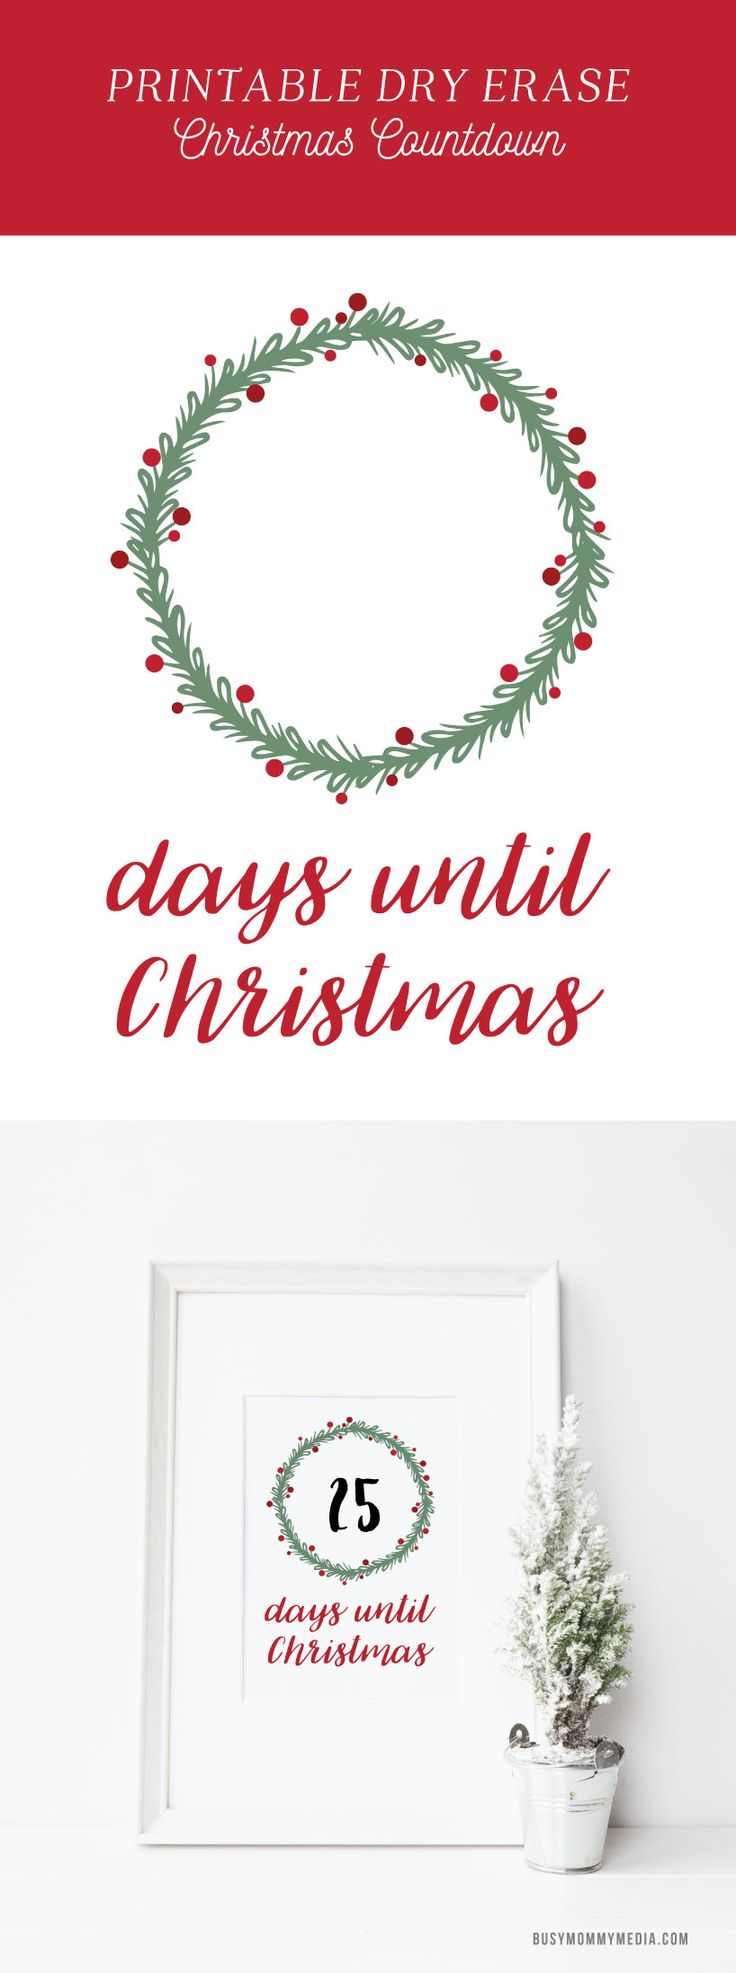 Days until Christmas Printable